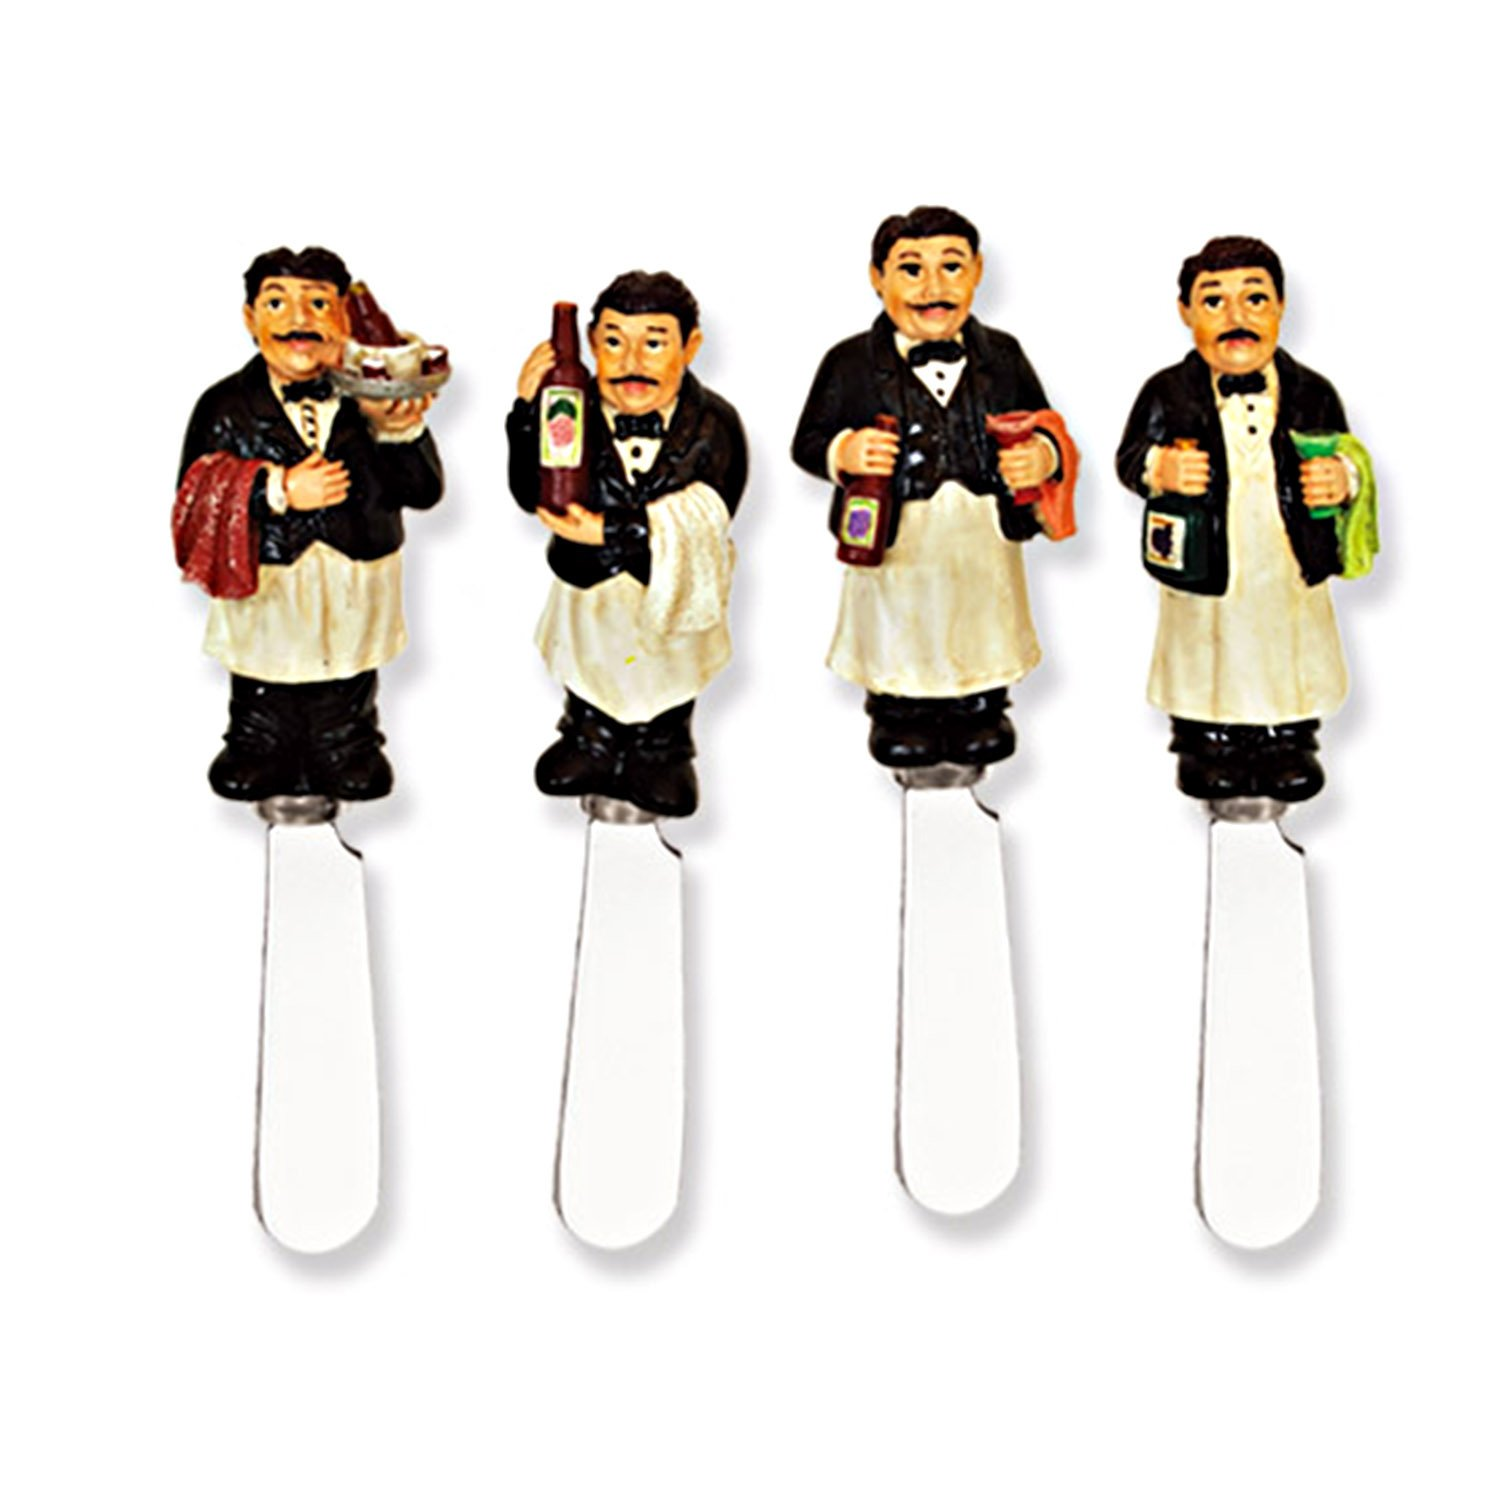 Cheese Spreader Set of 4 - Chefs by Supreme Housewares 5187